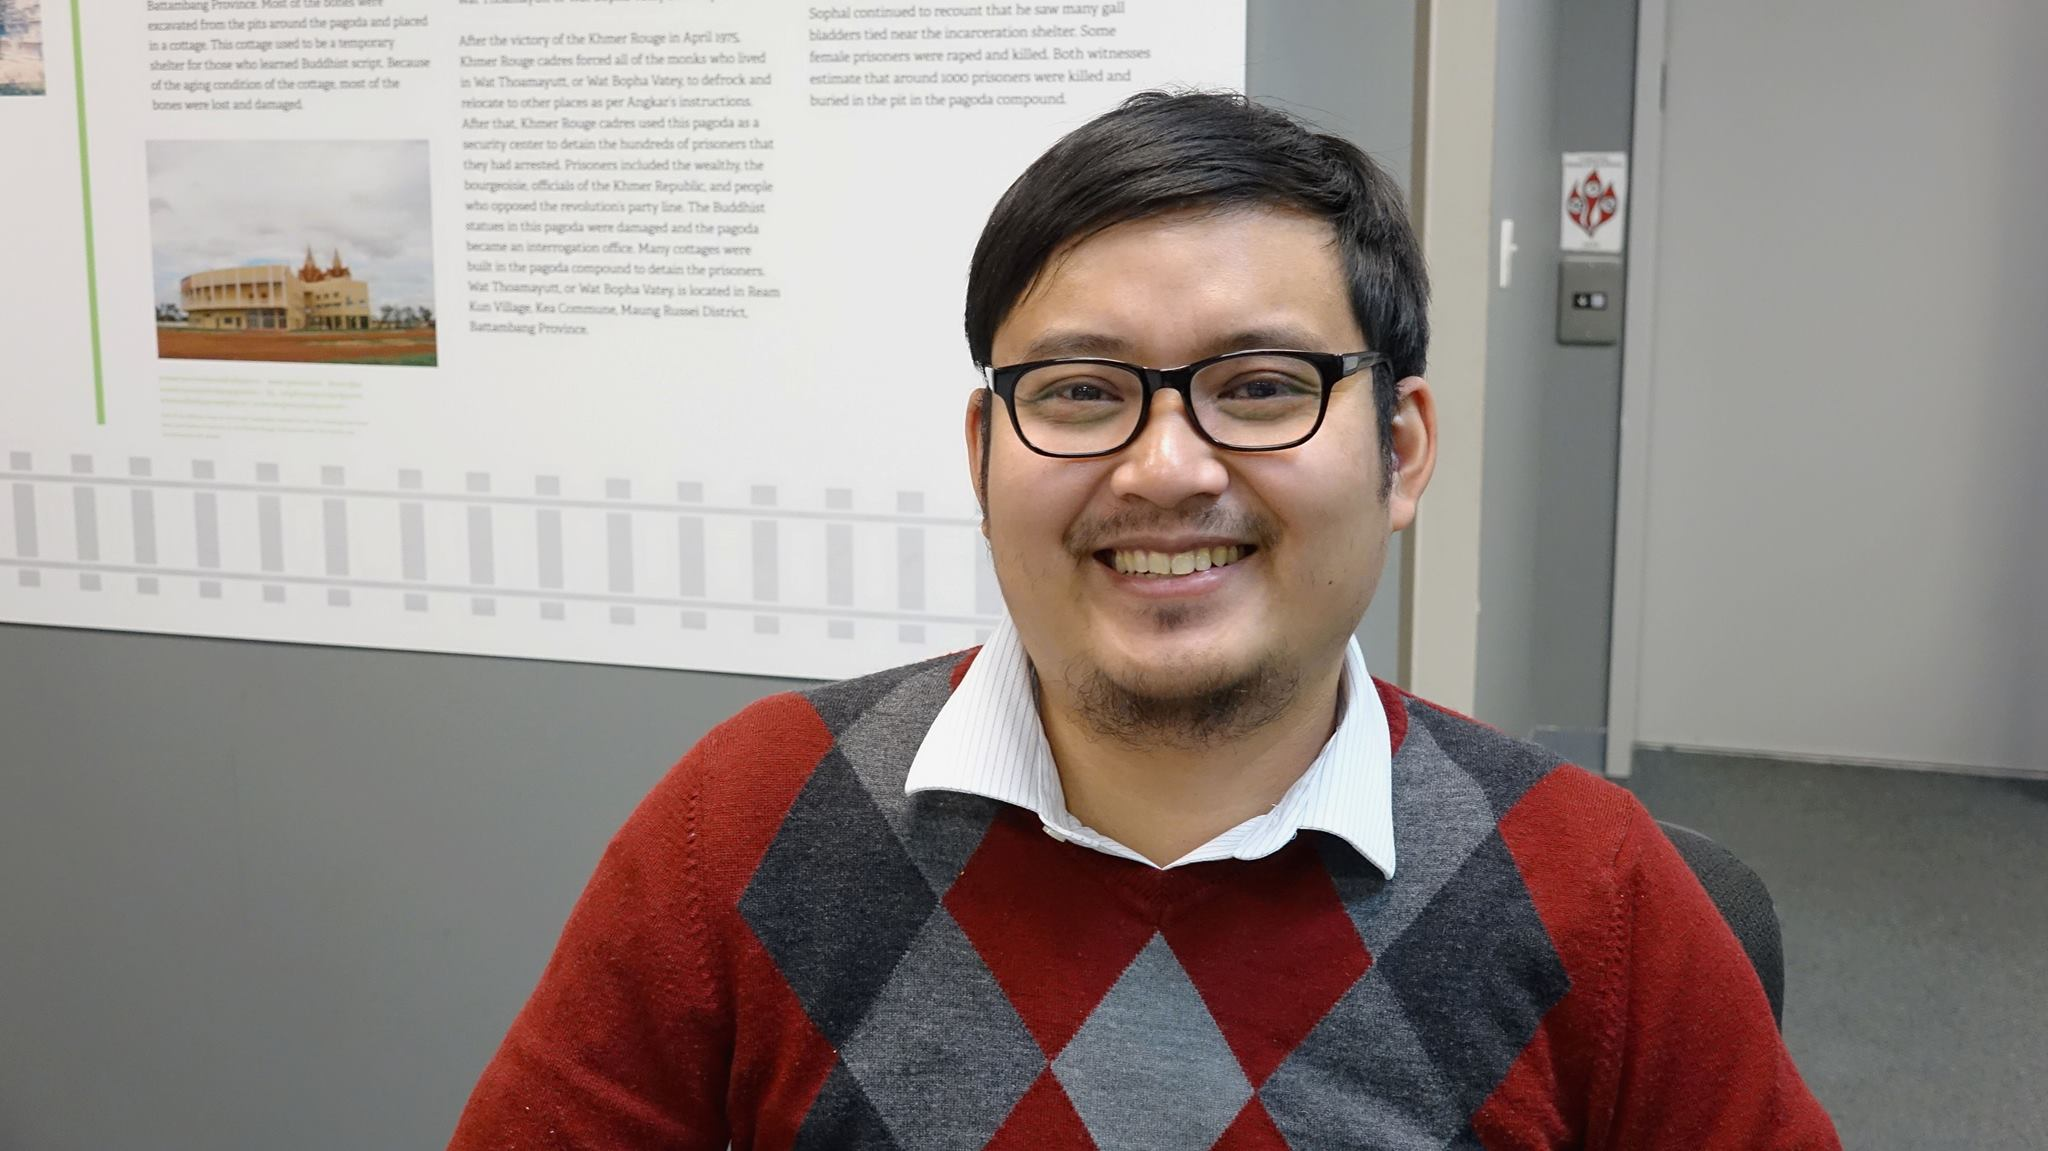 Randy Kim - Randy Kim is a queer Southeast Asian-American from the Chicagoland area, born to parents that were former refugees (my dad from Cambodia, and my mom from Vietnam). He currently serves as a board member with the National Cambodian Heritage Museum. Follow him on social media @Randall_Kimball